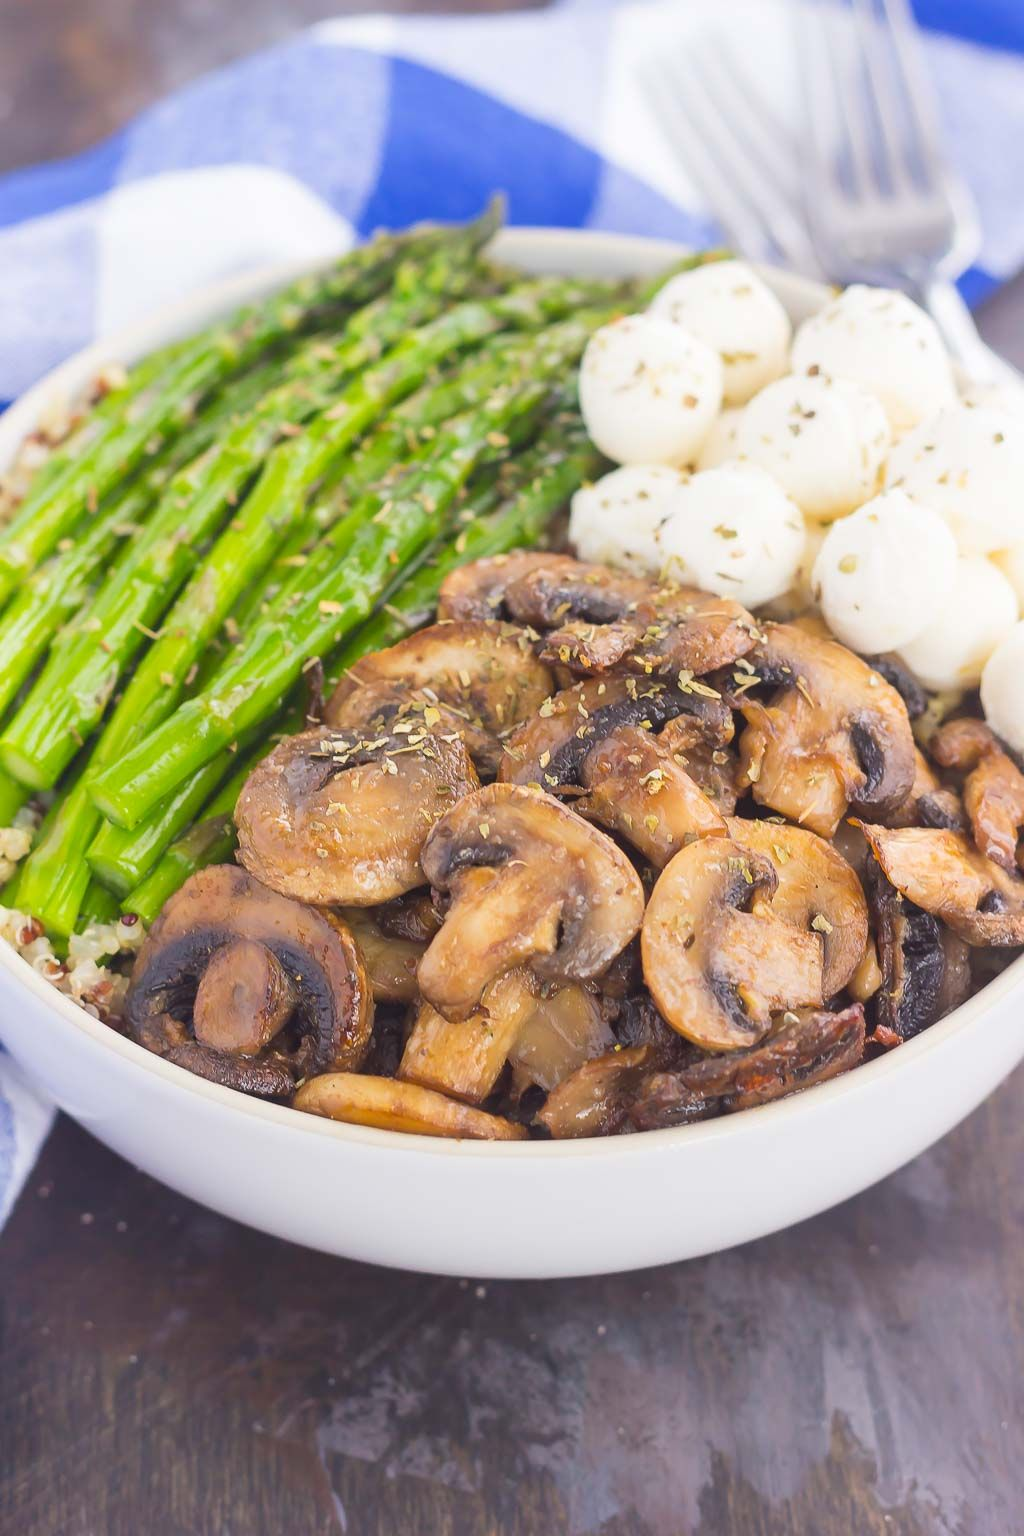 If you're looking for a new favorite recipe, this Asparagus and Mushroom Quinoa Bowl will become